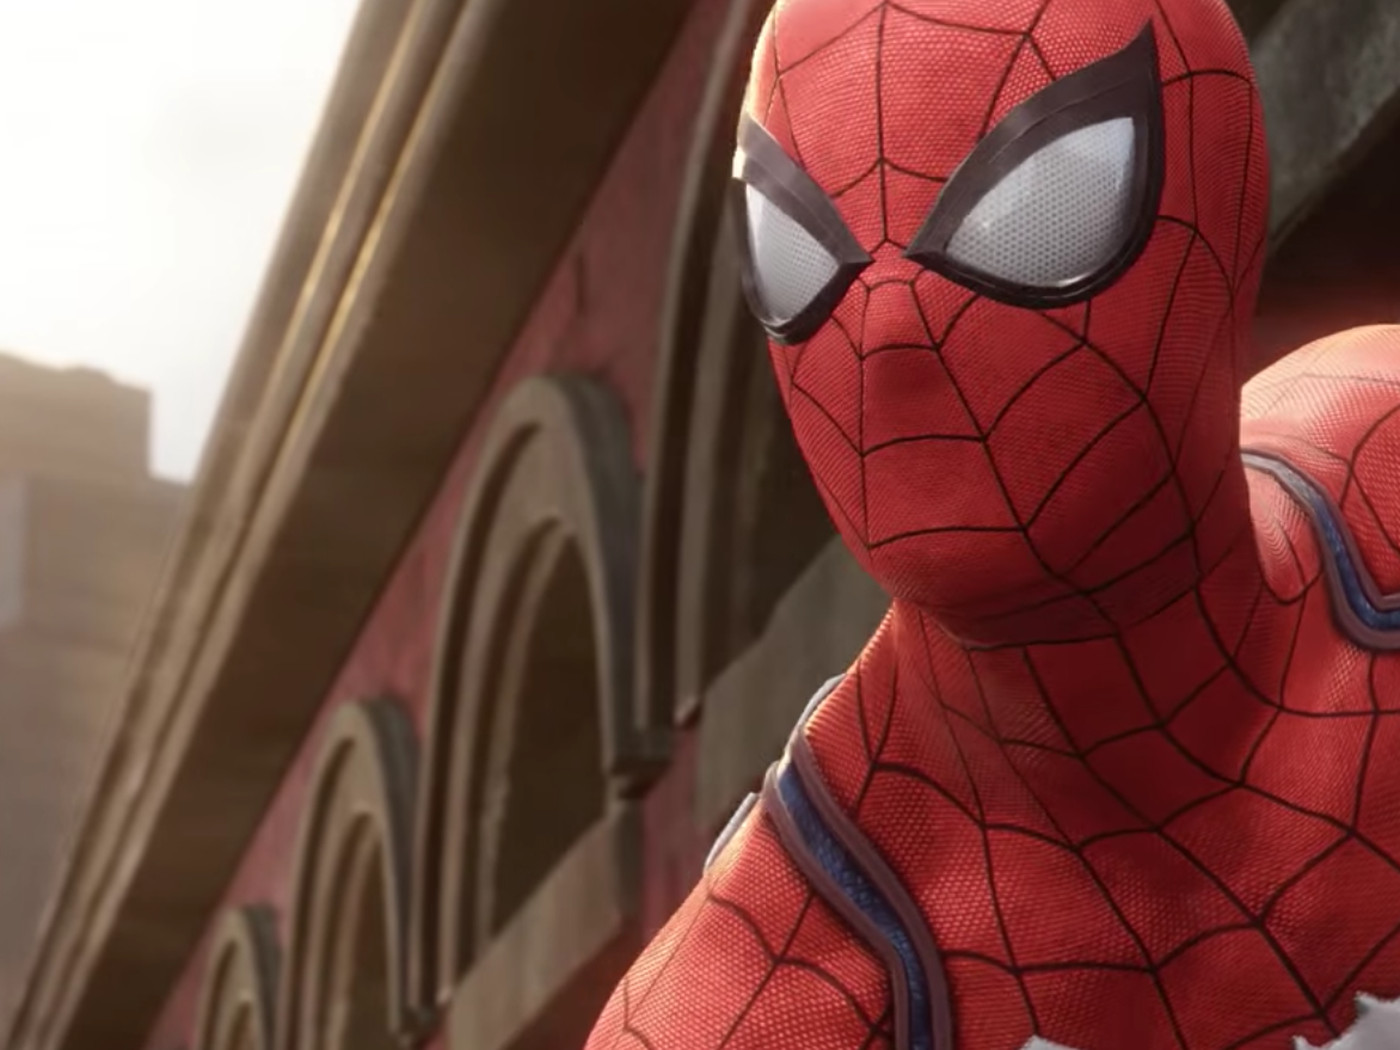 Spider-Man slings into an action-packed adventure exclusive to the PlayStation 4.